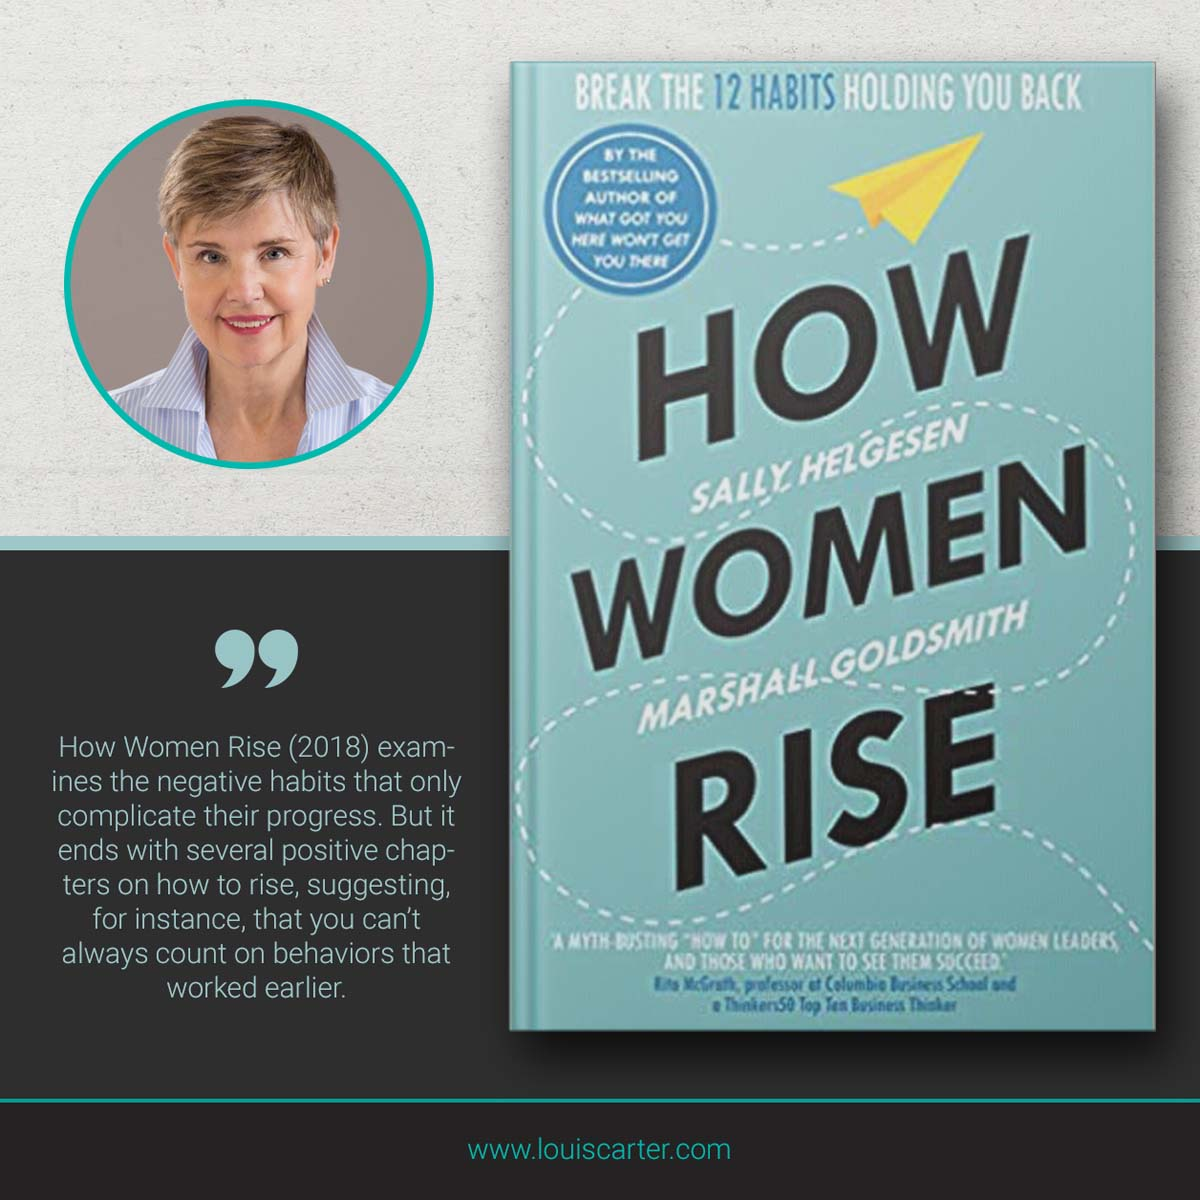 Image of Leadership book How Women Rise by Sally Helgesen and Marshall Goldsmith.